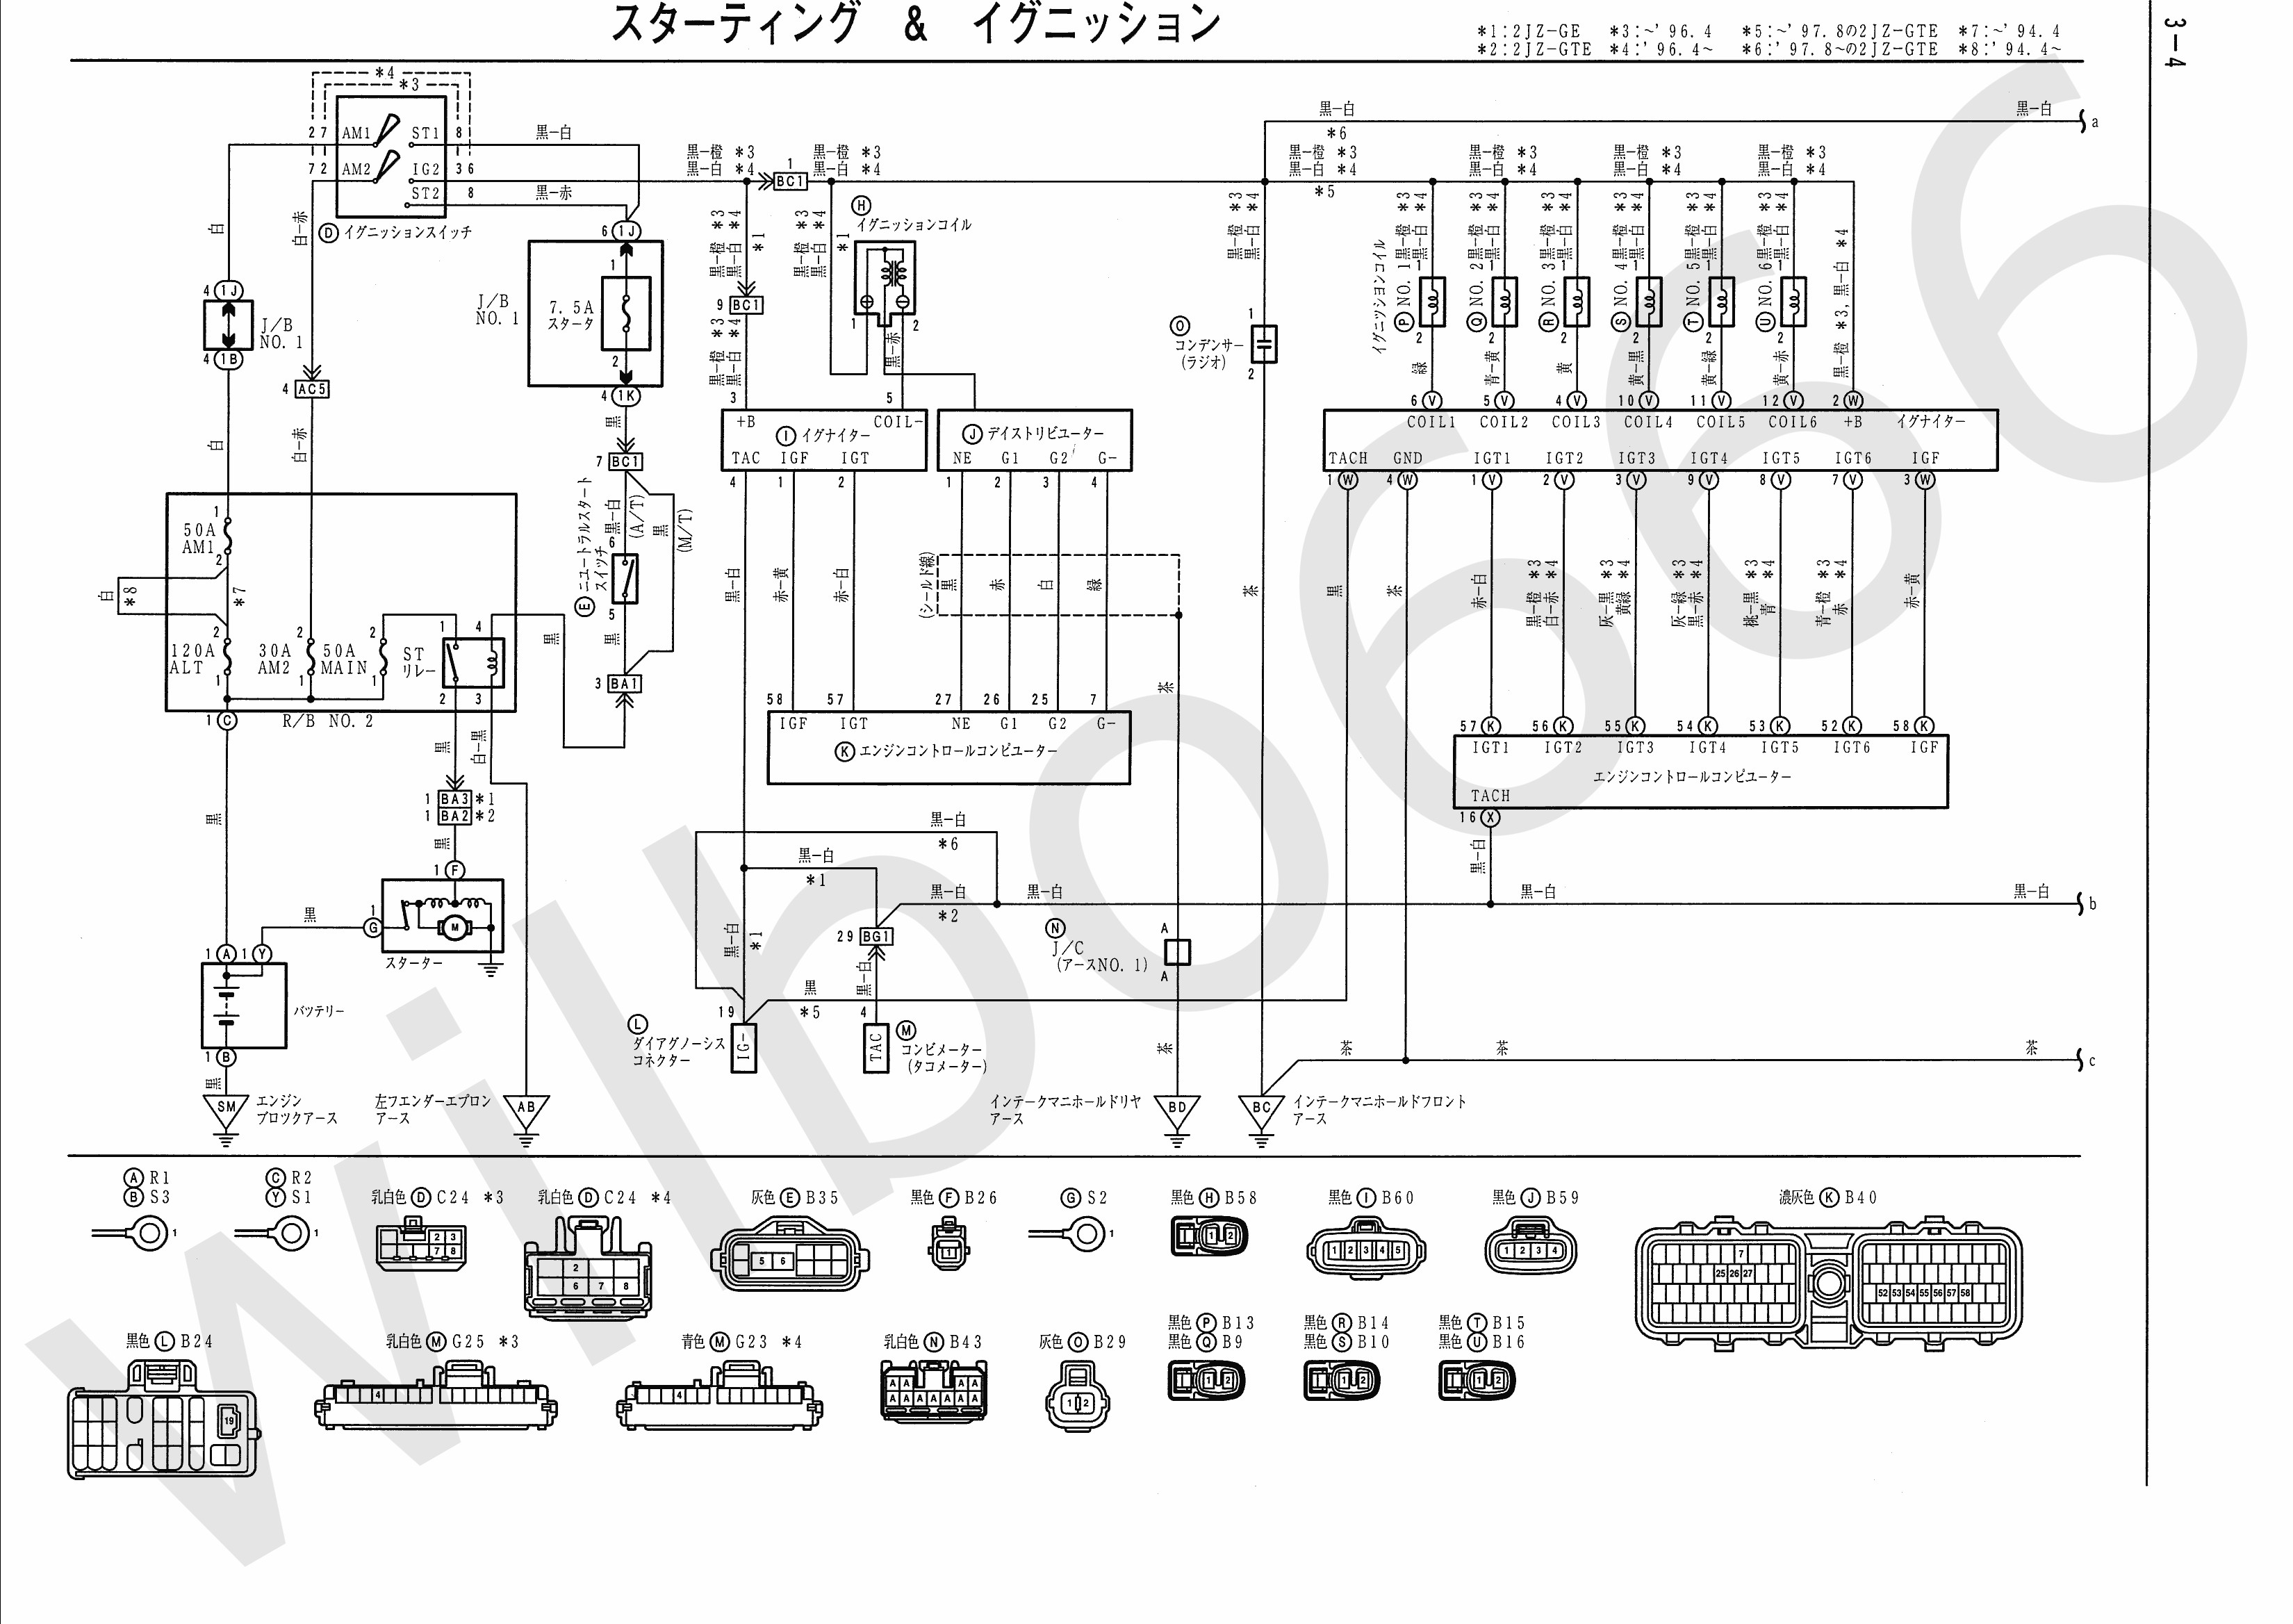 S1 Switch Wiring Diagram Wilbo666 2jz Ge Jza80 Supra Engine Wiring Of S1 Switch Wiring Diagram